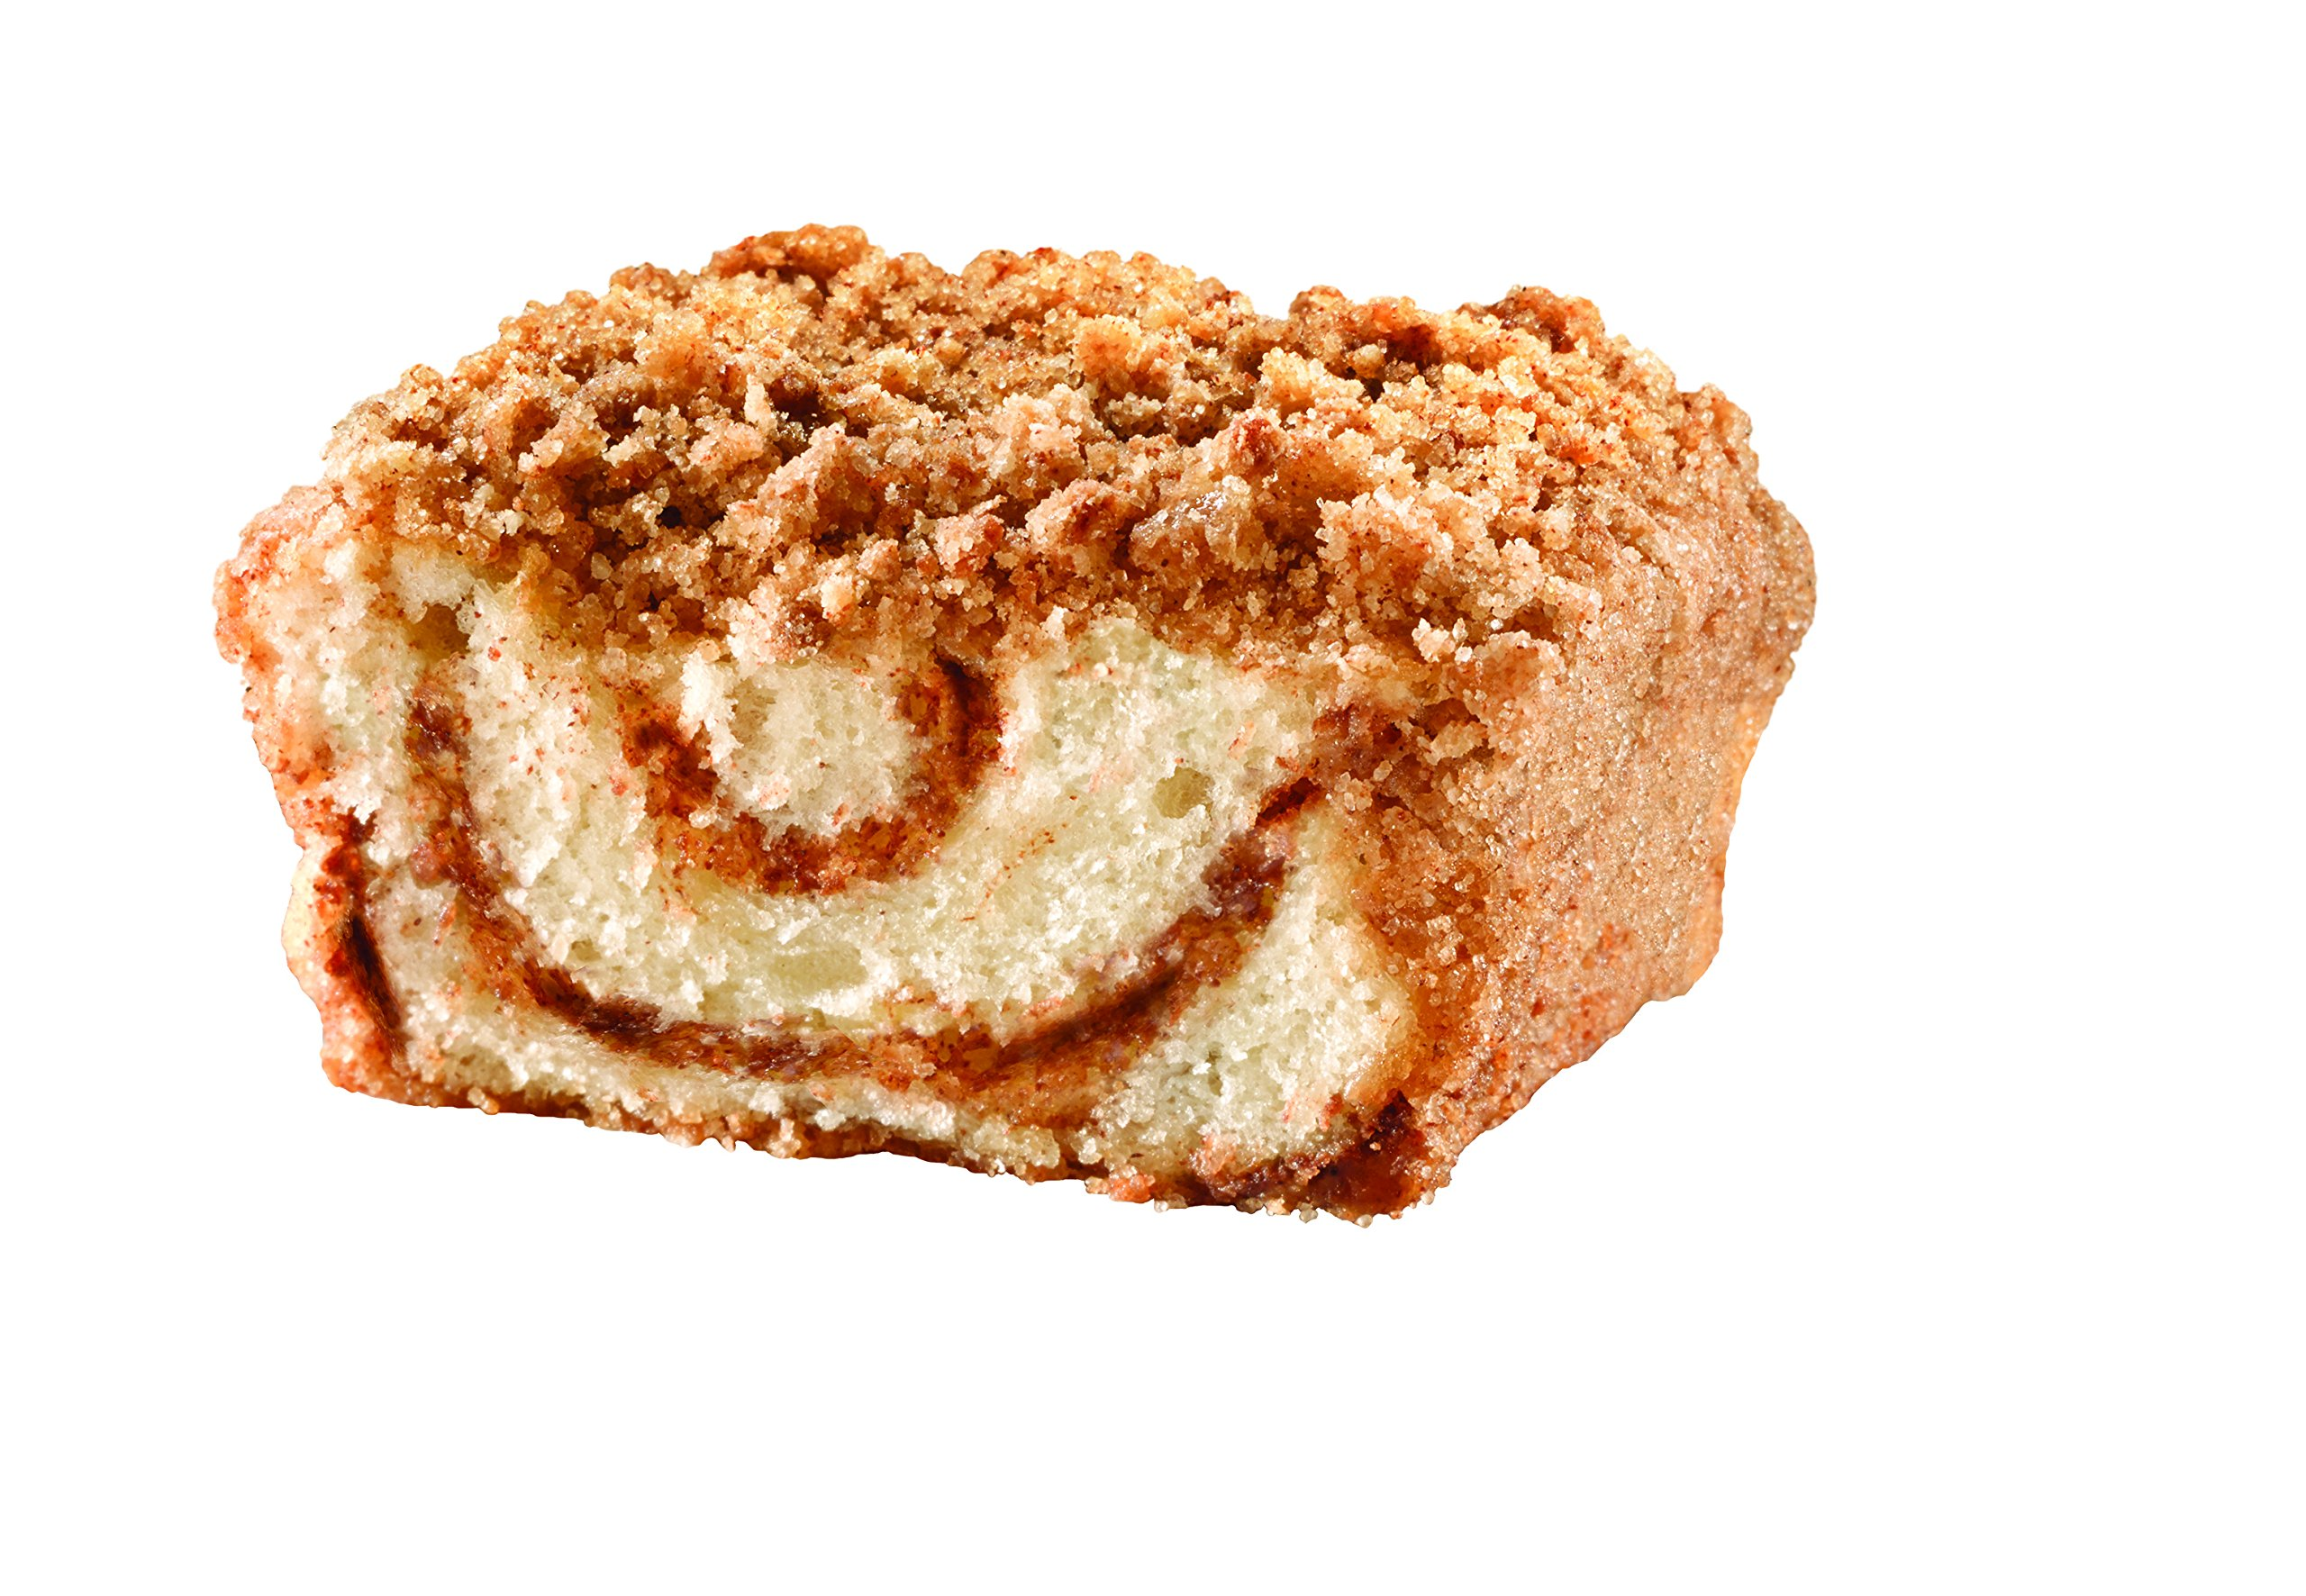 Hostess Coffee Cakes, Cinnamon Streusel, 2.89 Ounce, 8 Count (Pack of 6) by Hostess (Image #4)